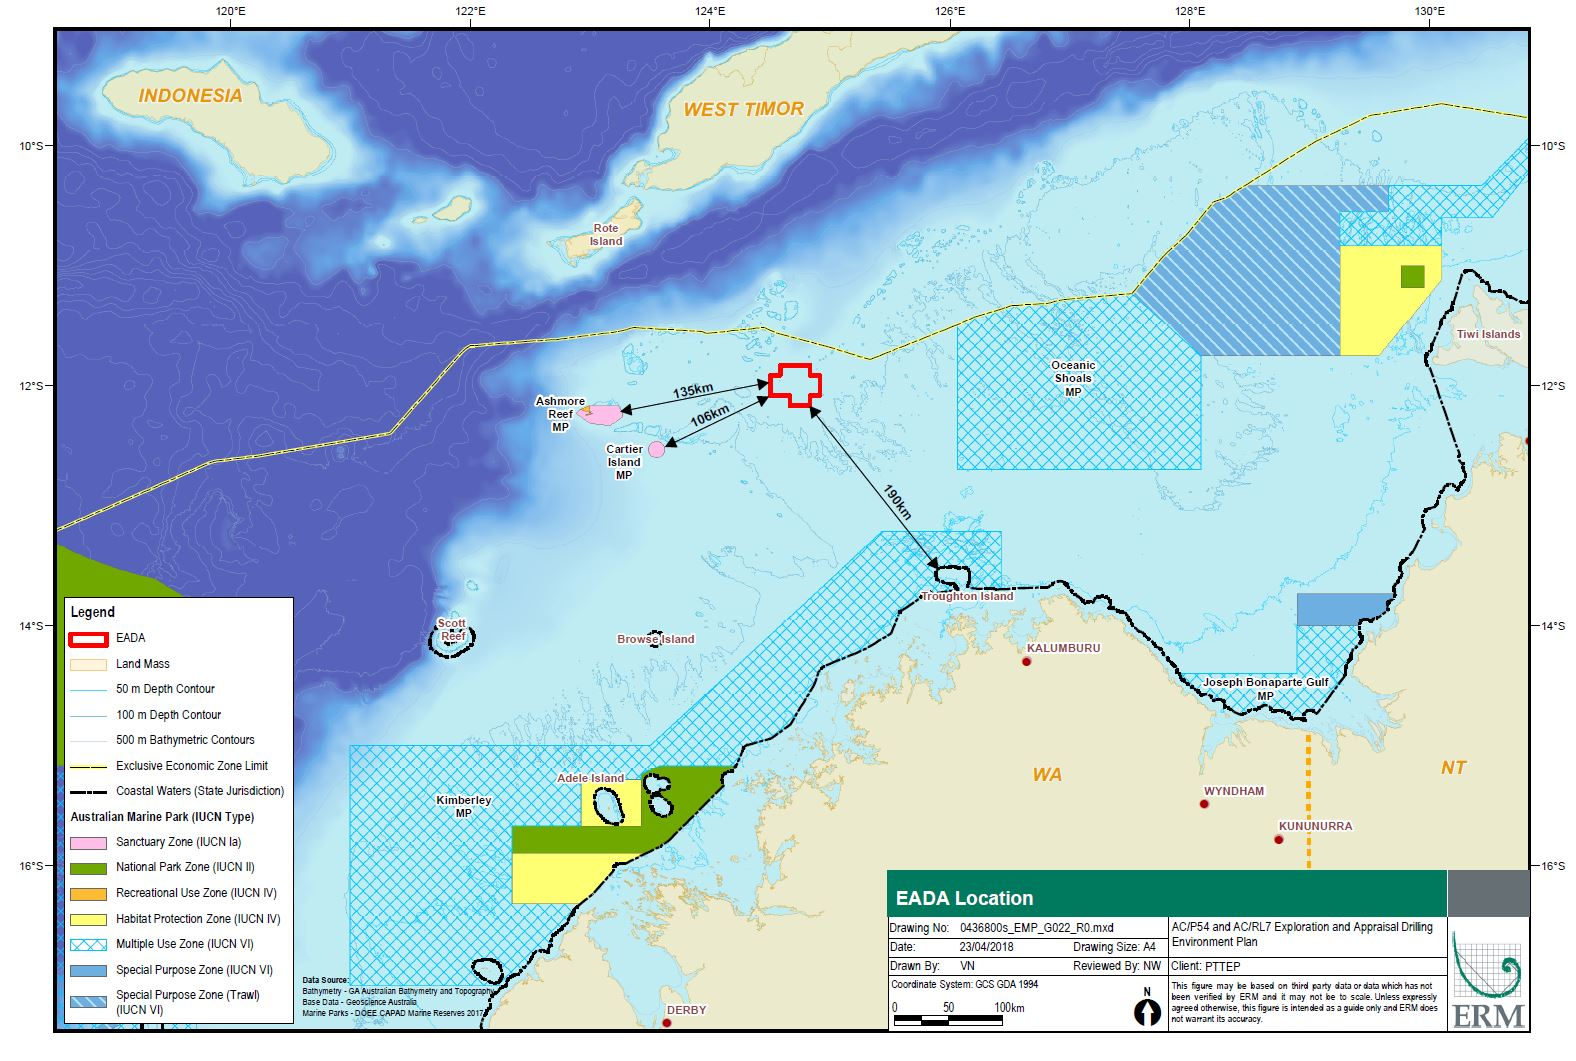 Location map - Activity: AC/P54 and AC/RL7 Exploration and Appraisal Drilling (refer to description)